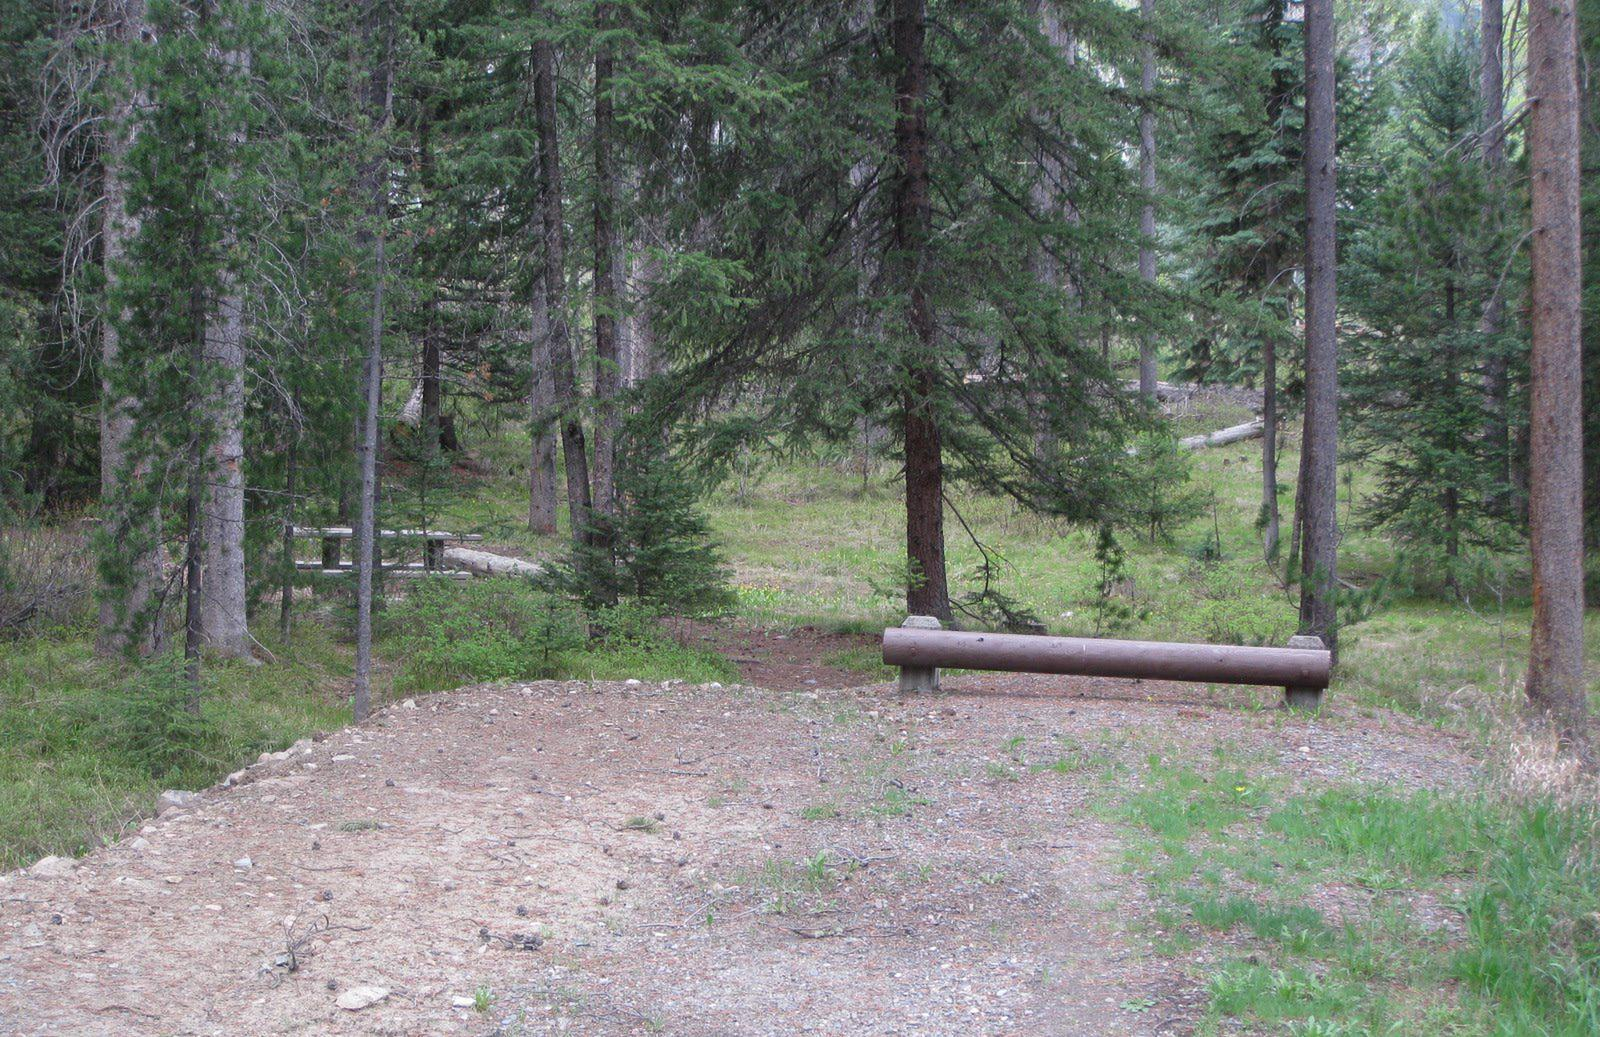 Site C23, campsite surrounded by pine trees, picnic table & fire ringSite C23